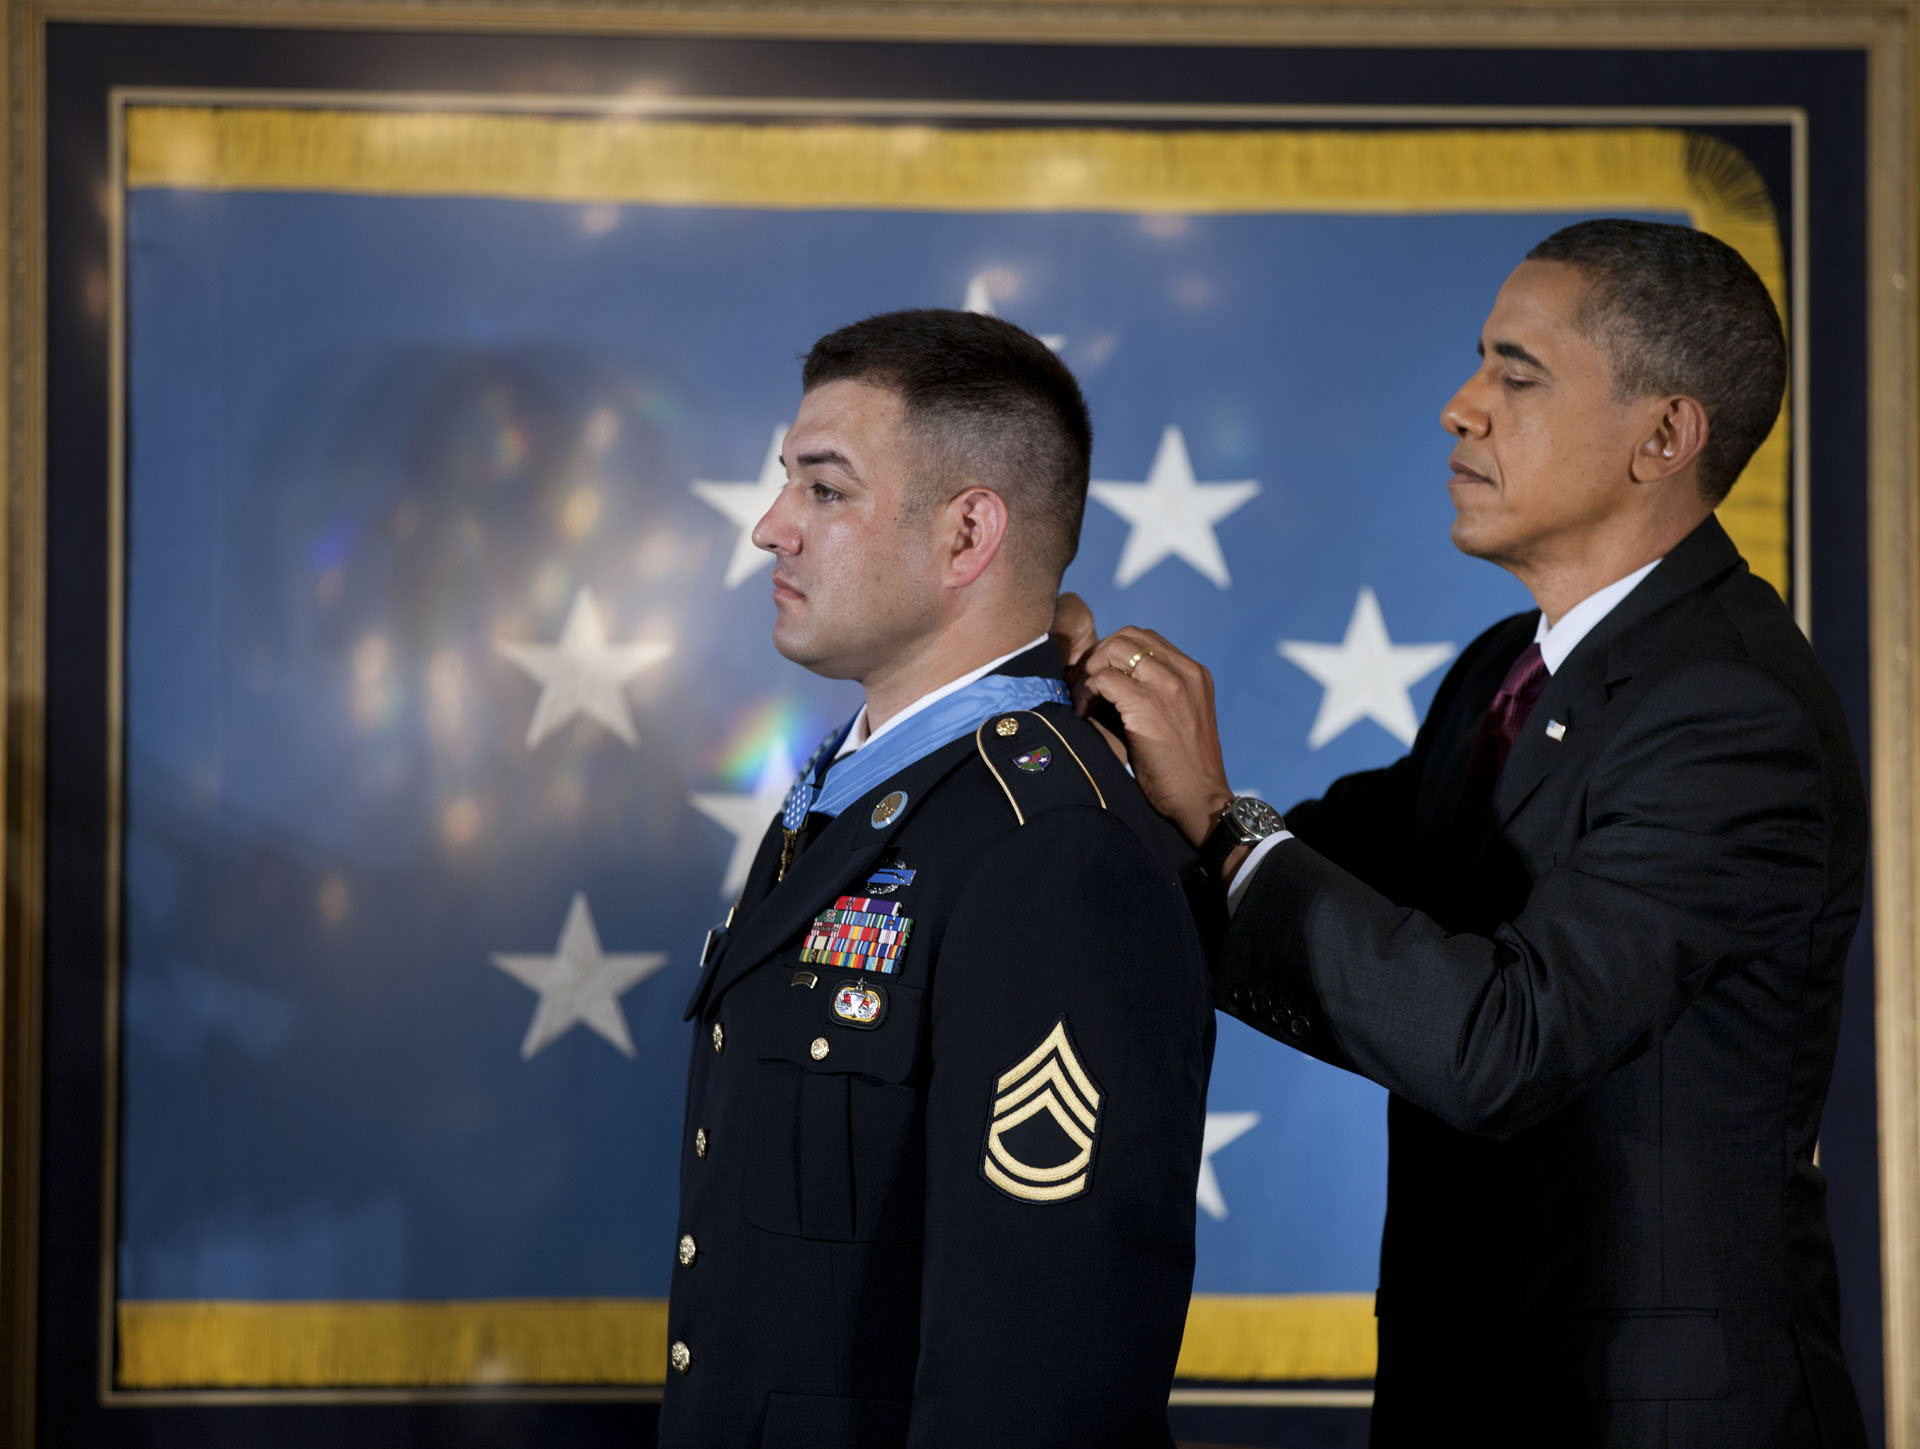 President Obama Awards the Medal of Honor to Sergeant First Class Leroy Petry